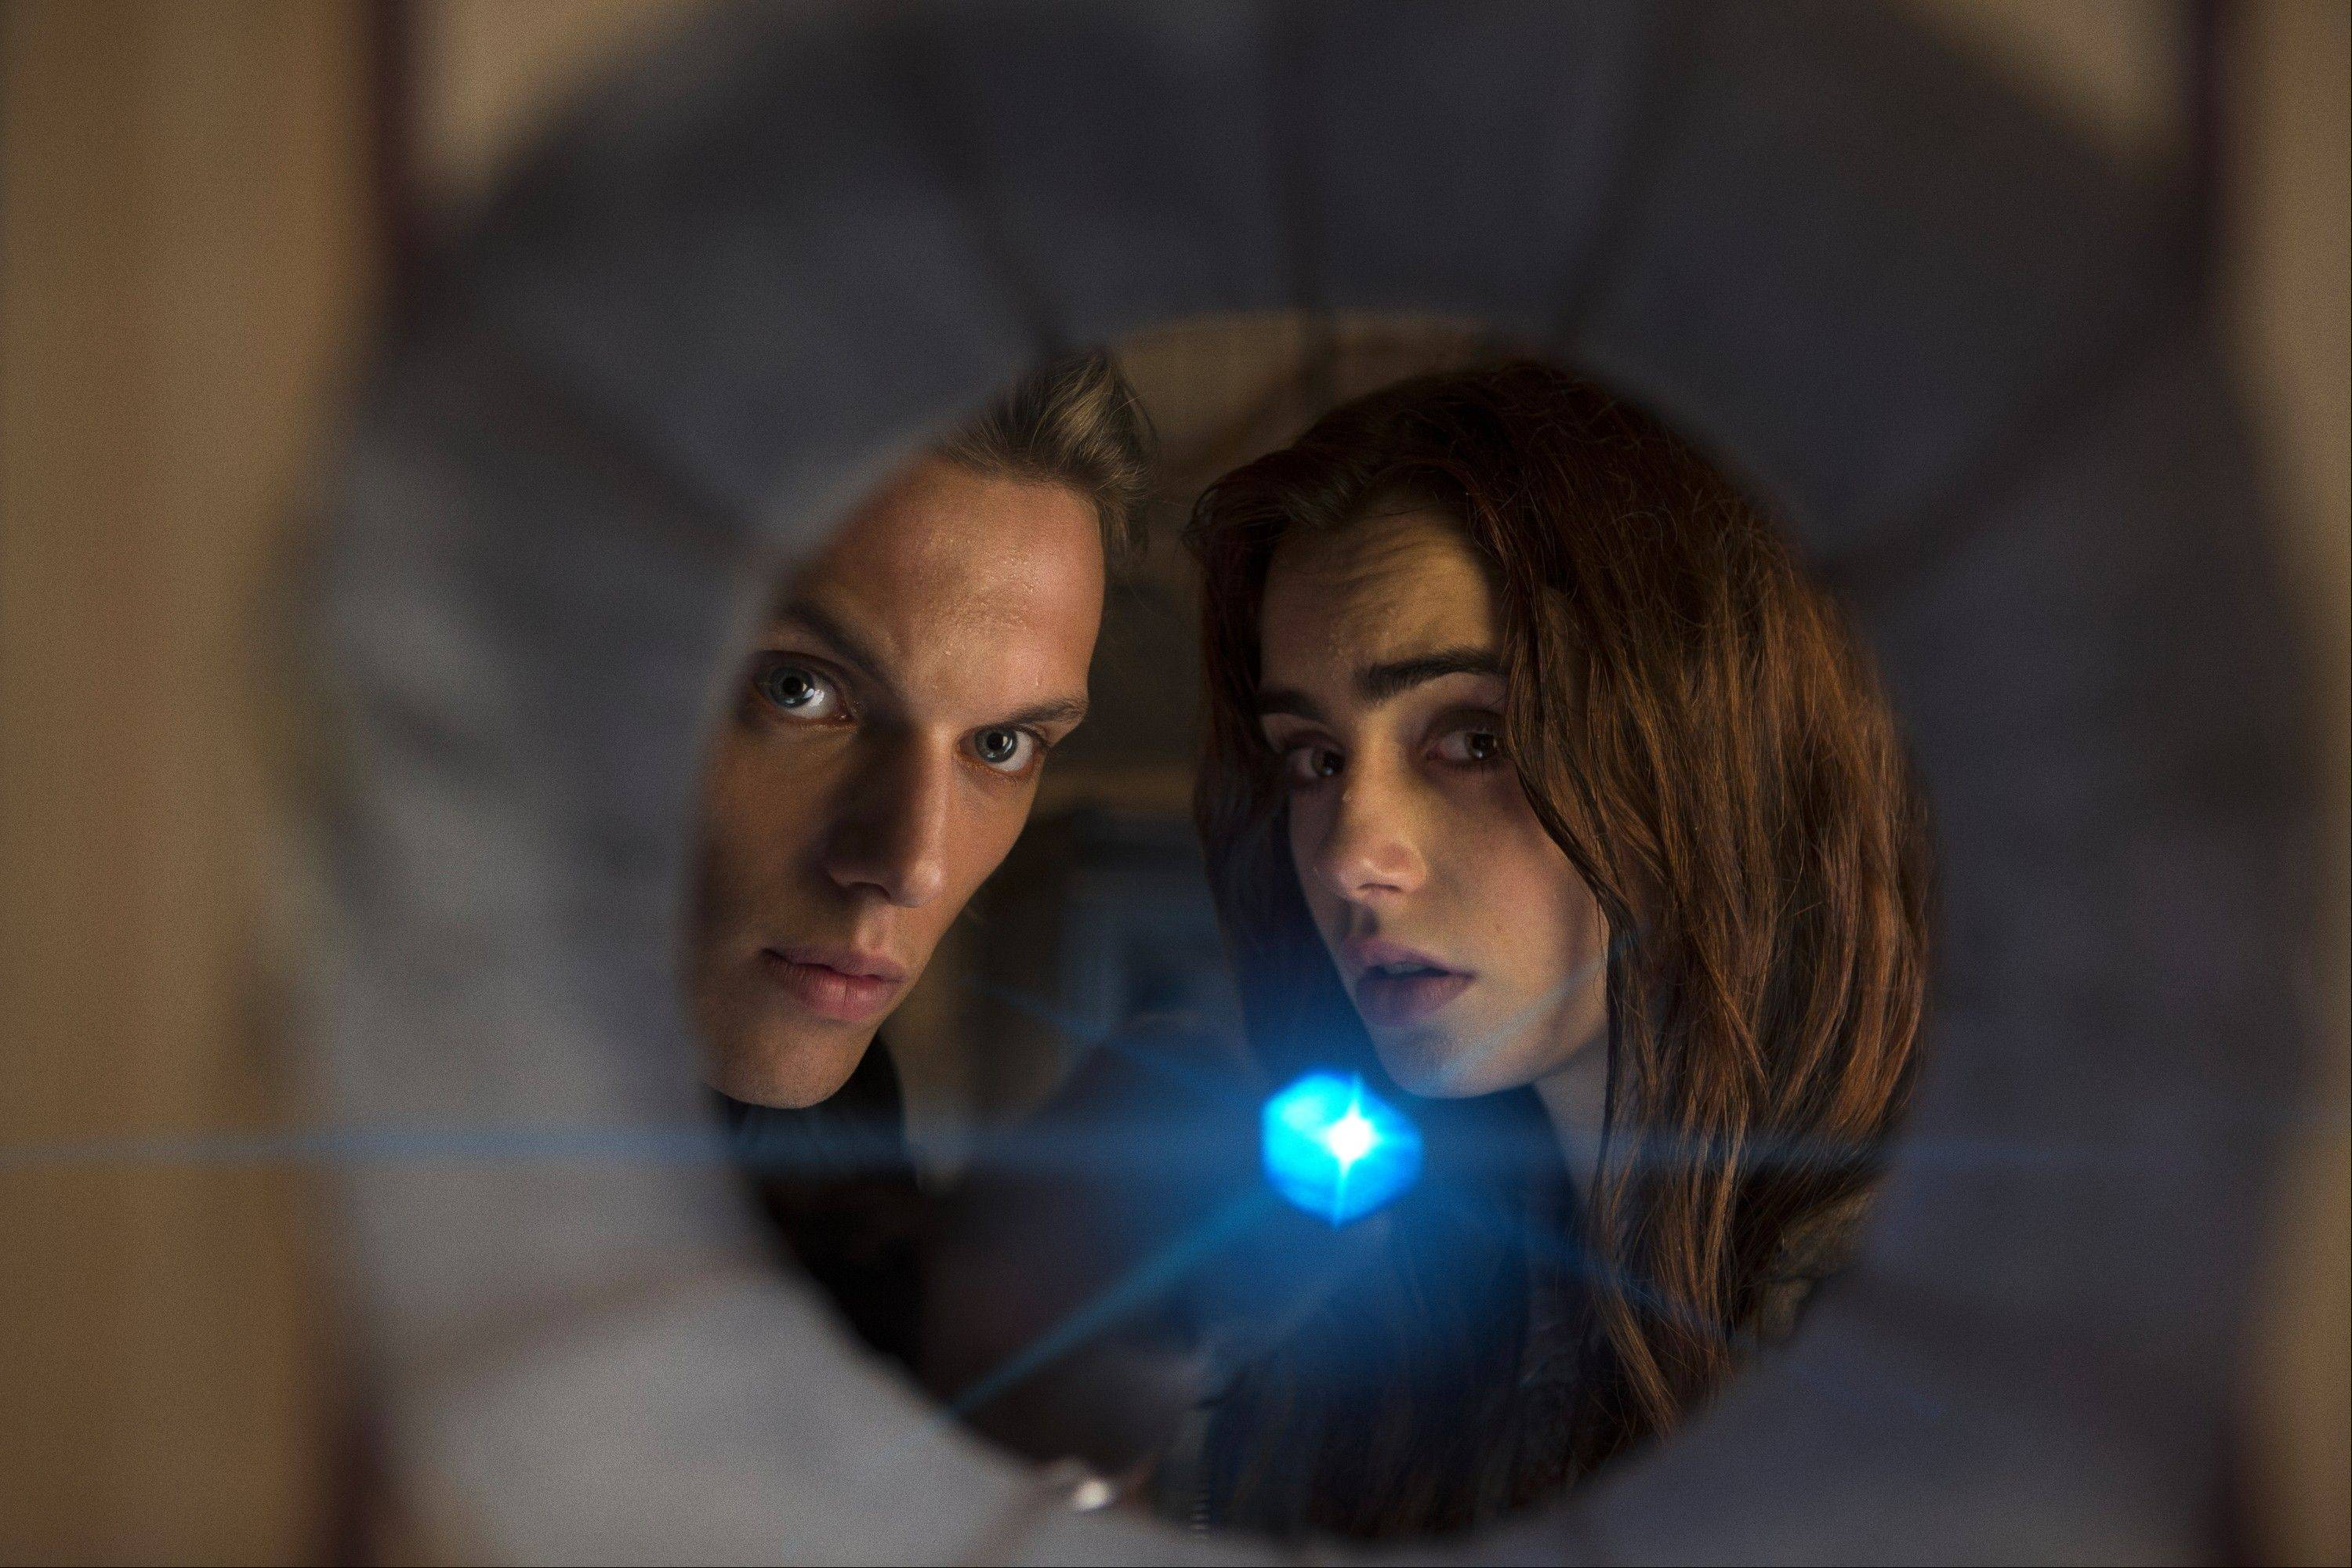 Jace (Jamie Campbell Bower) and Clary (Lily Collins) spy on demonic activity in the hilariously bad fantasy adventure �Mortal Instruments: City of Bones.�